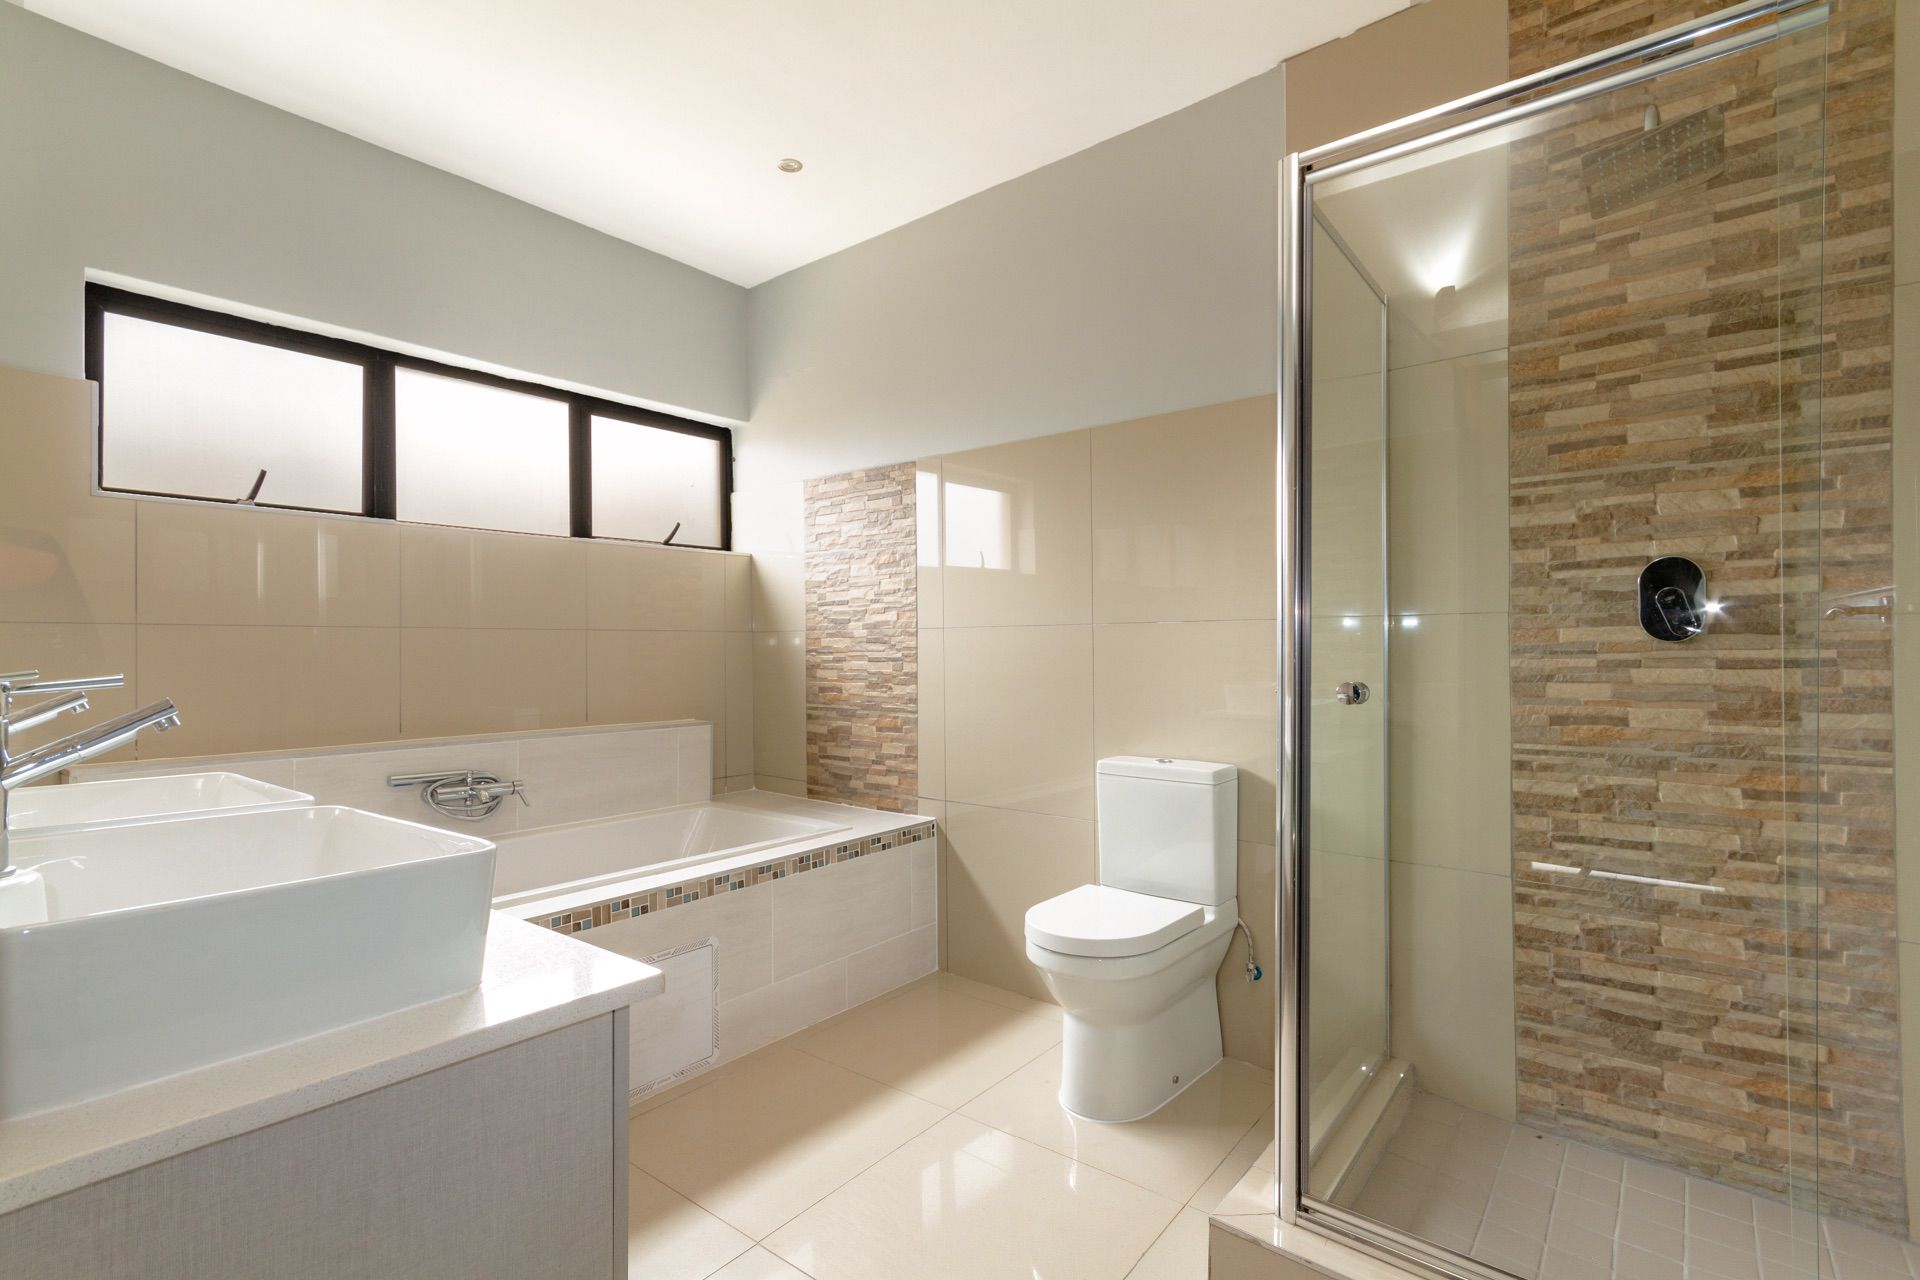 Master en-suite with his and hers vanity